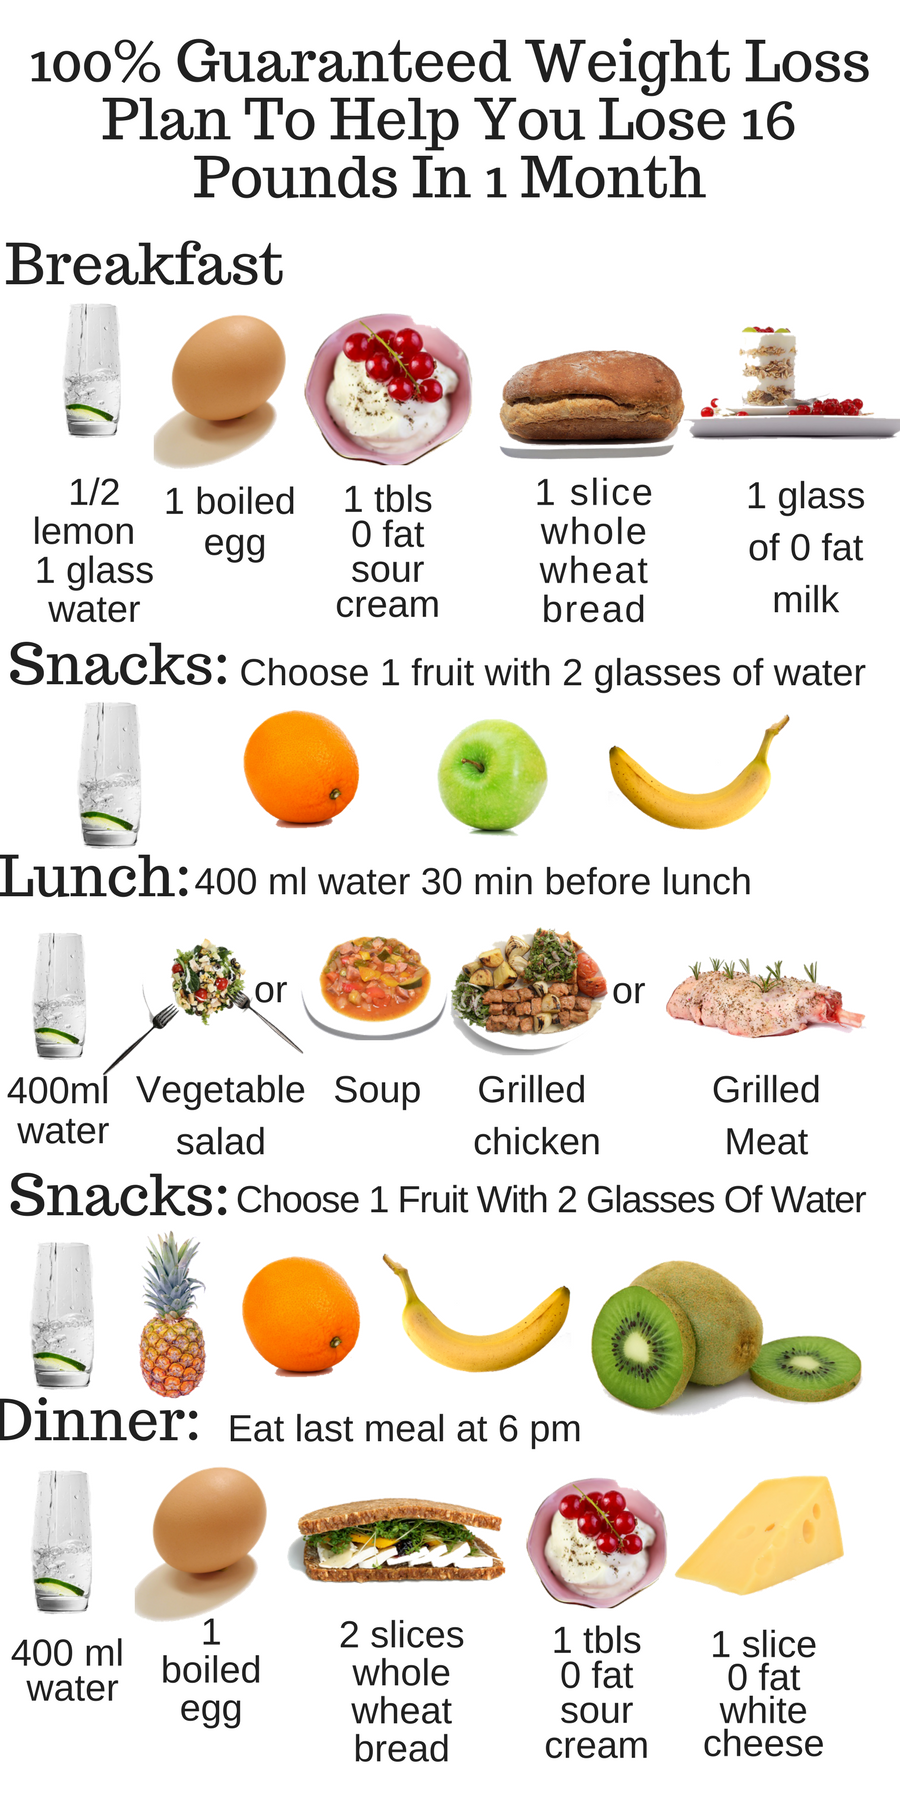 Free Weight Loss Diet Plan To Help You Lose Weight Fast